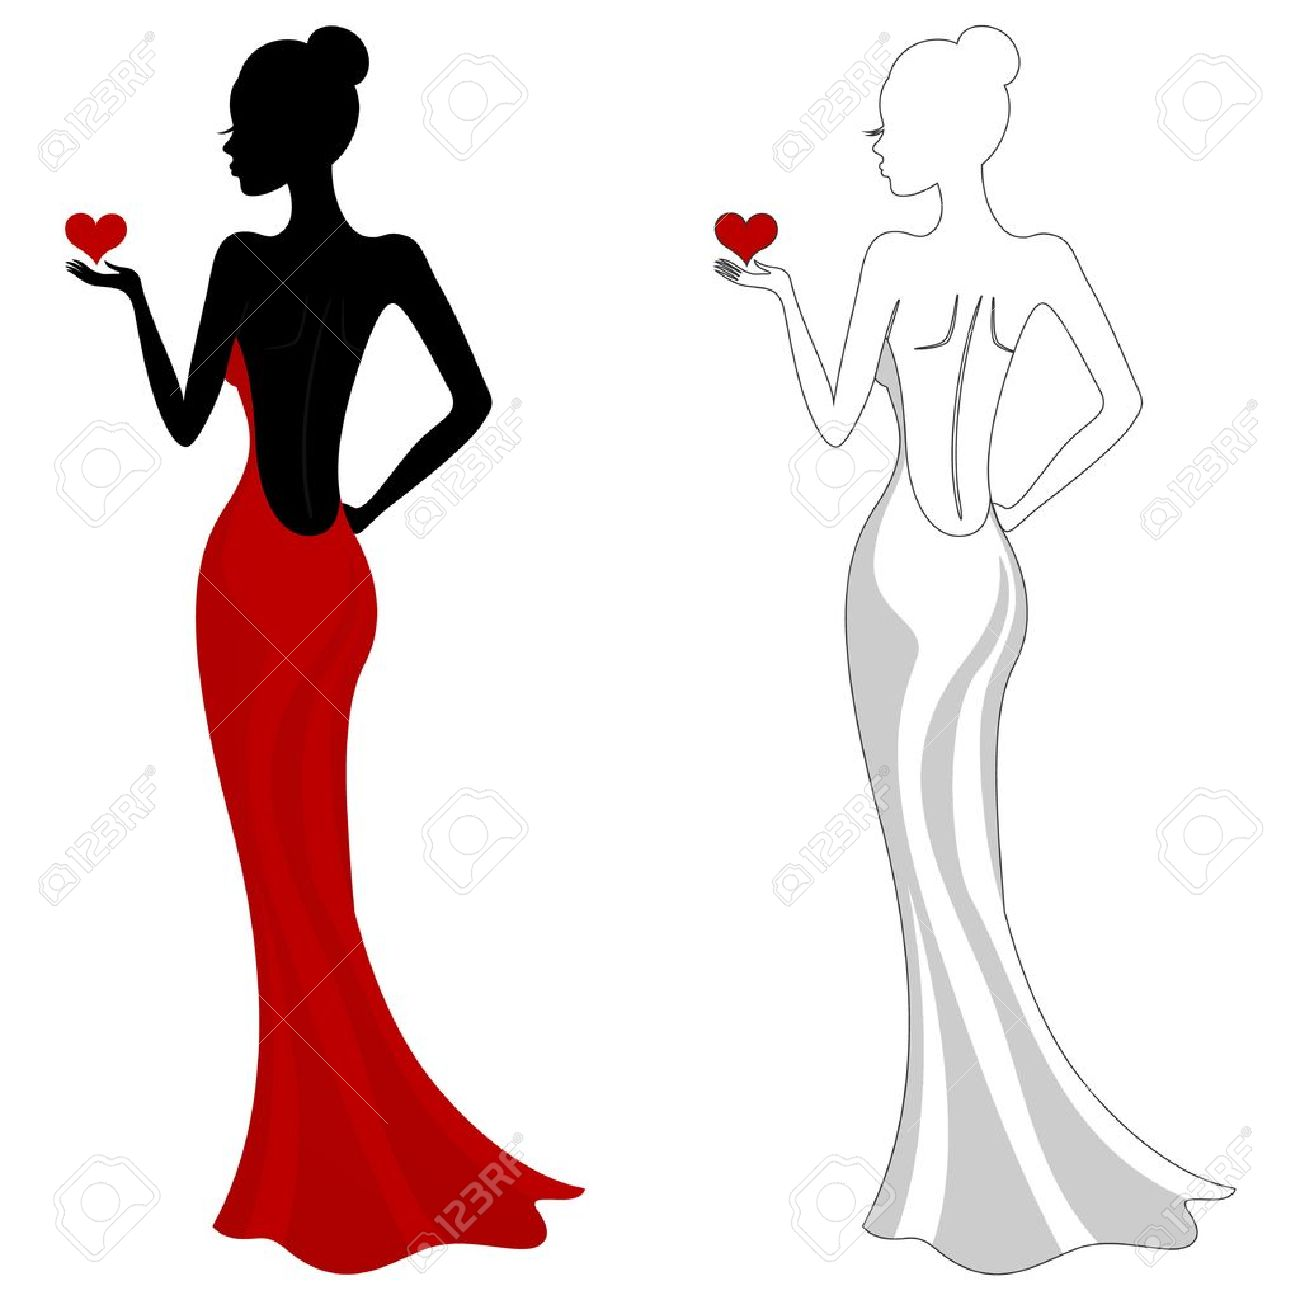 Free clipart elegant girl in a red dress - ClipartFox banner library library